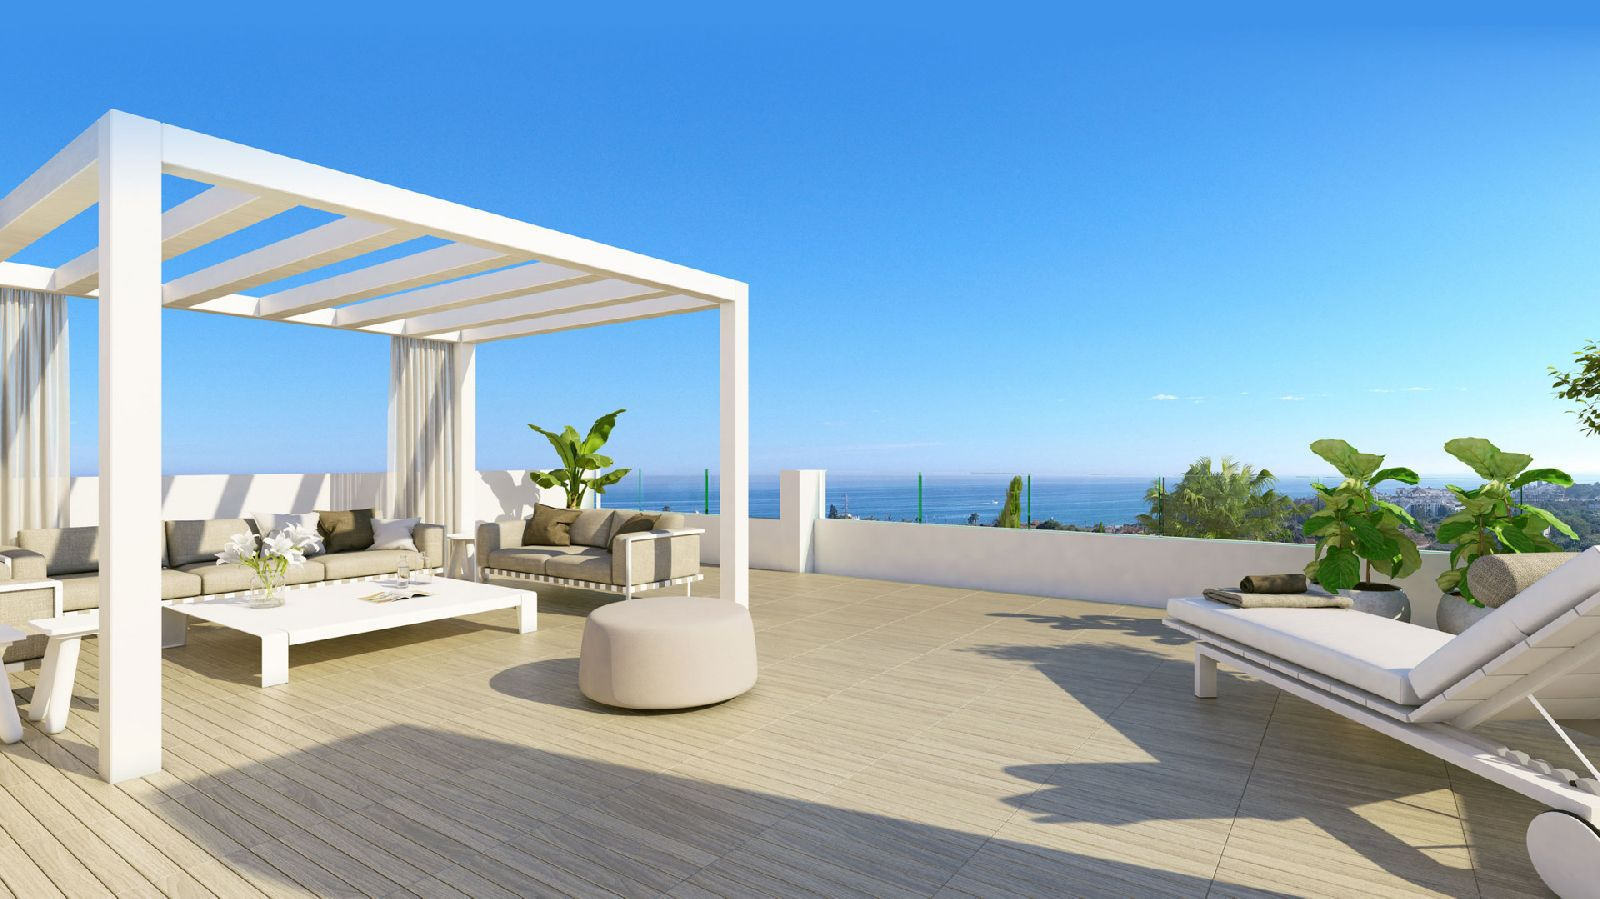 A stunning boutique development of 48 contemporary apartments located in Estepona